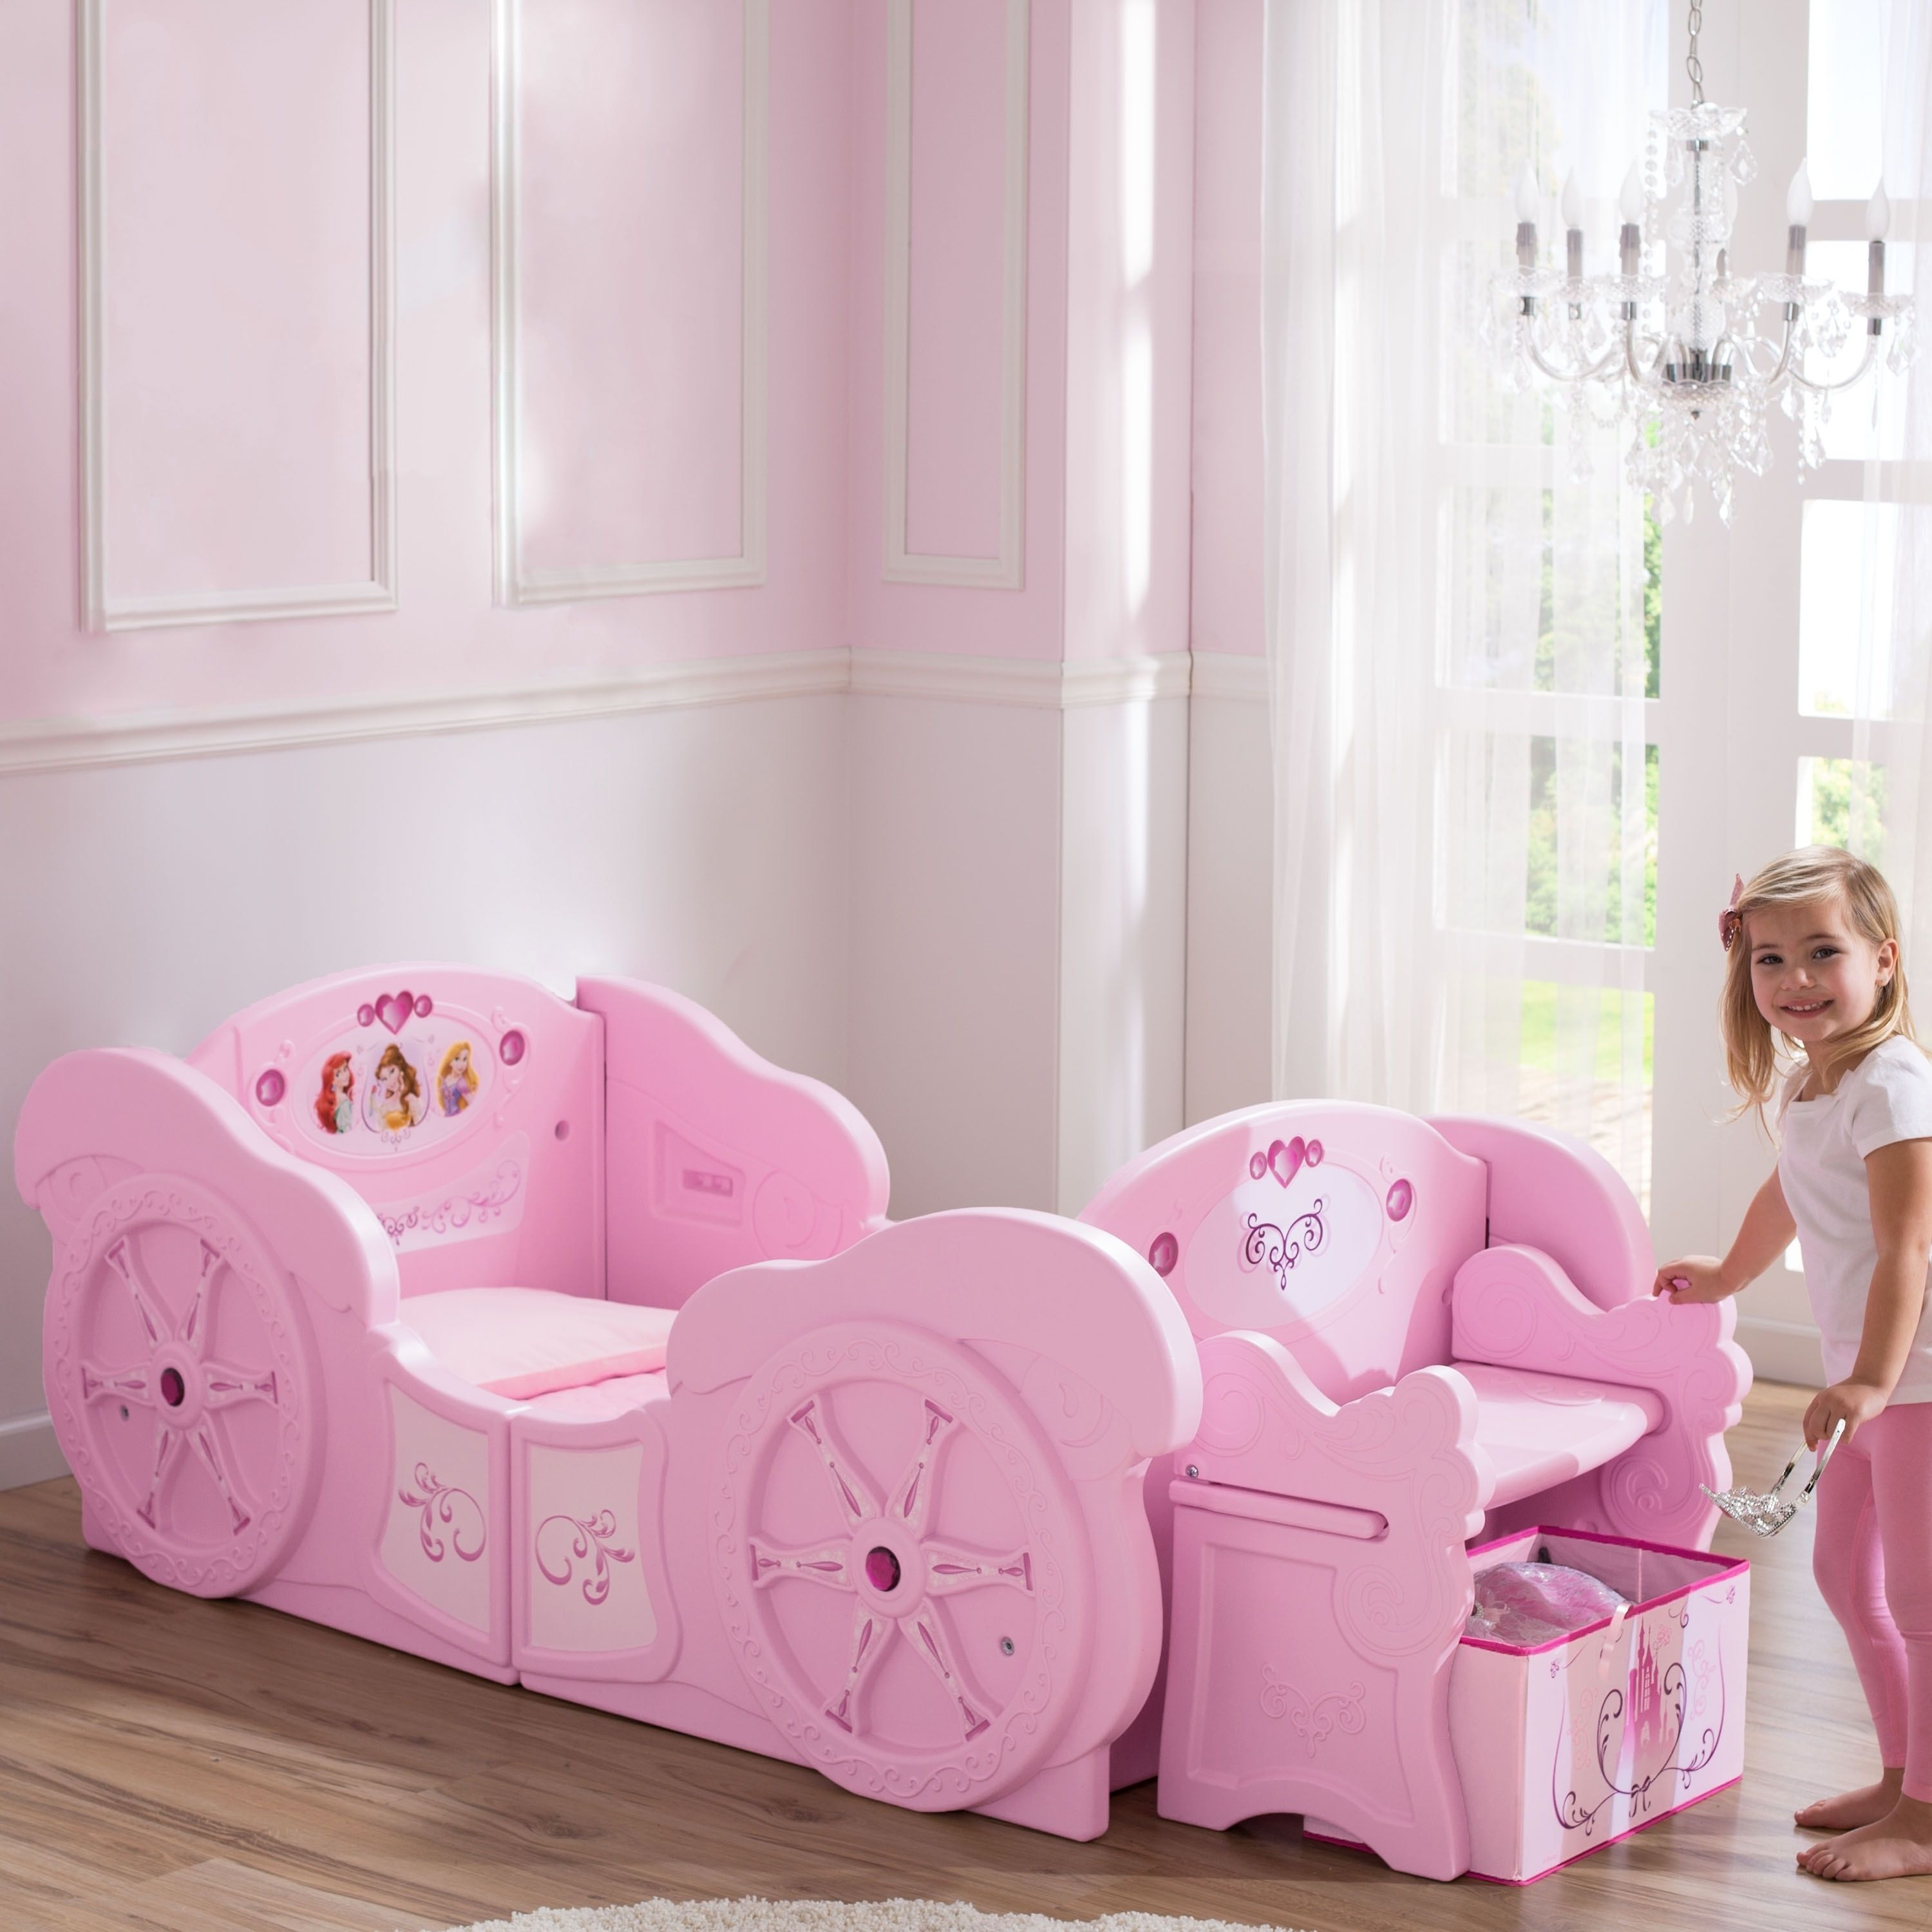 Disney Princess Carriage Toddler-to-Twin Bed, Pink